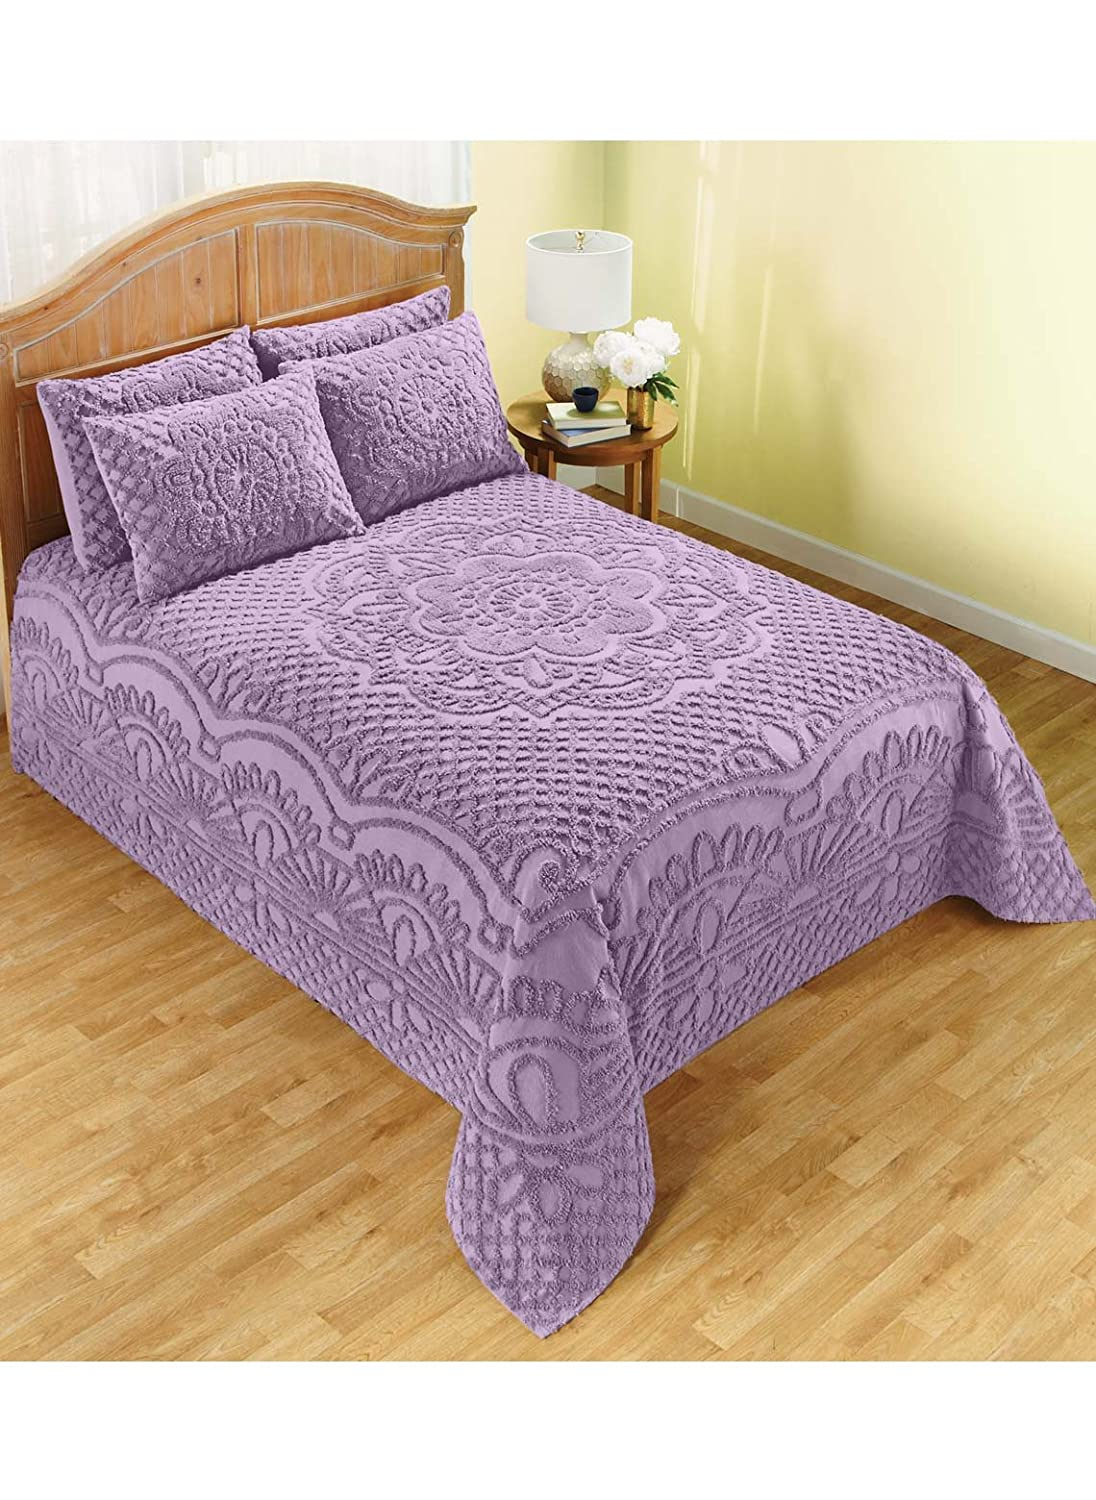 Carol Wright Gifts Trevara Bedspread - Full, Color Lavender, Lavender, Size Height:5.0(Unit:inches),Length:18.0(Unit:inches.